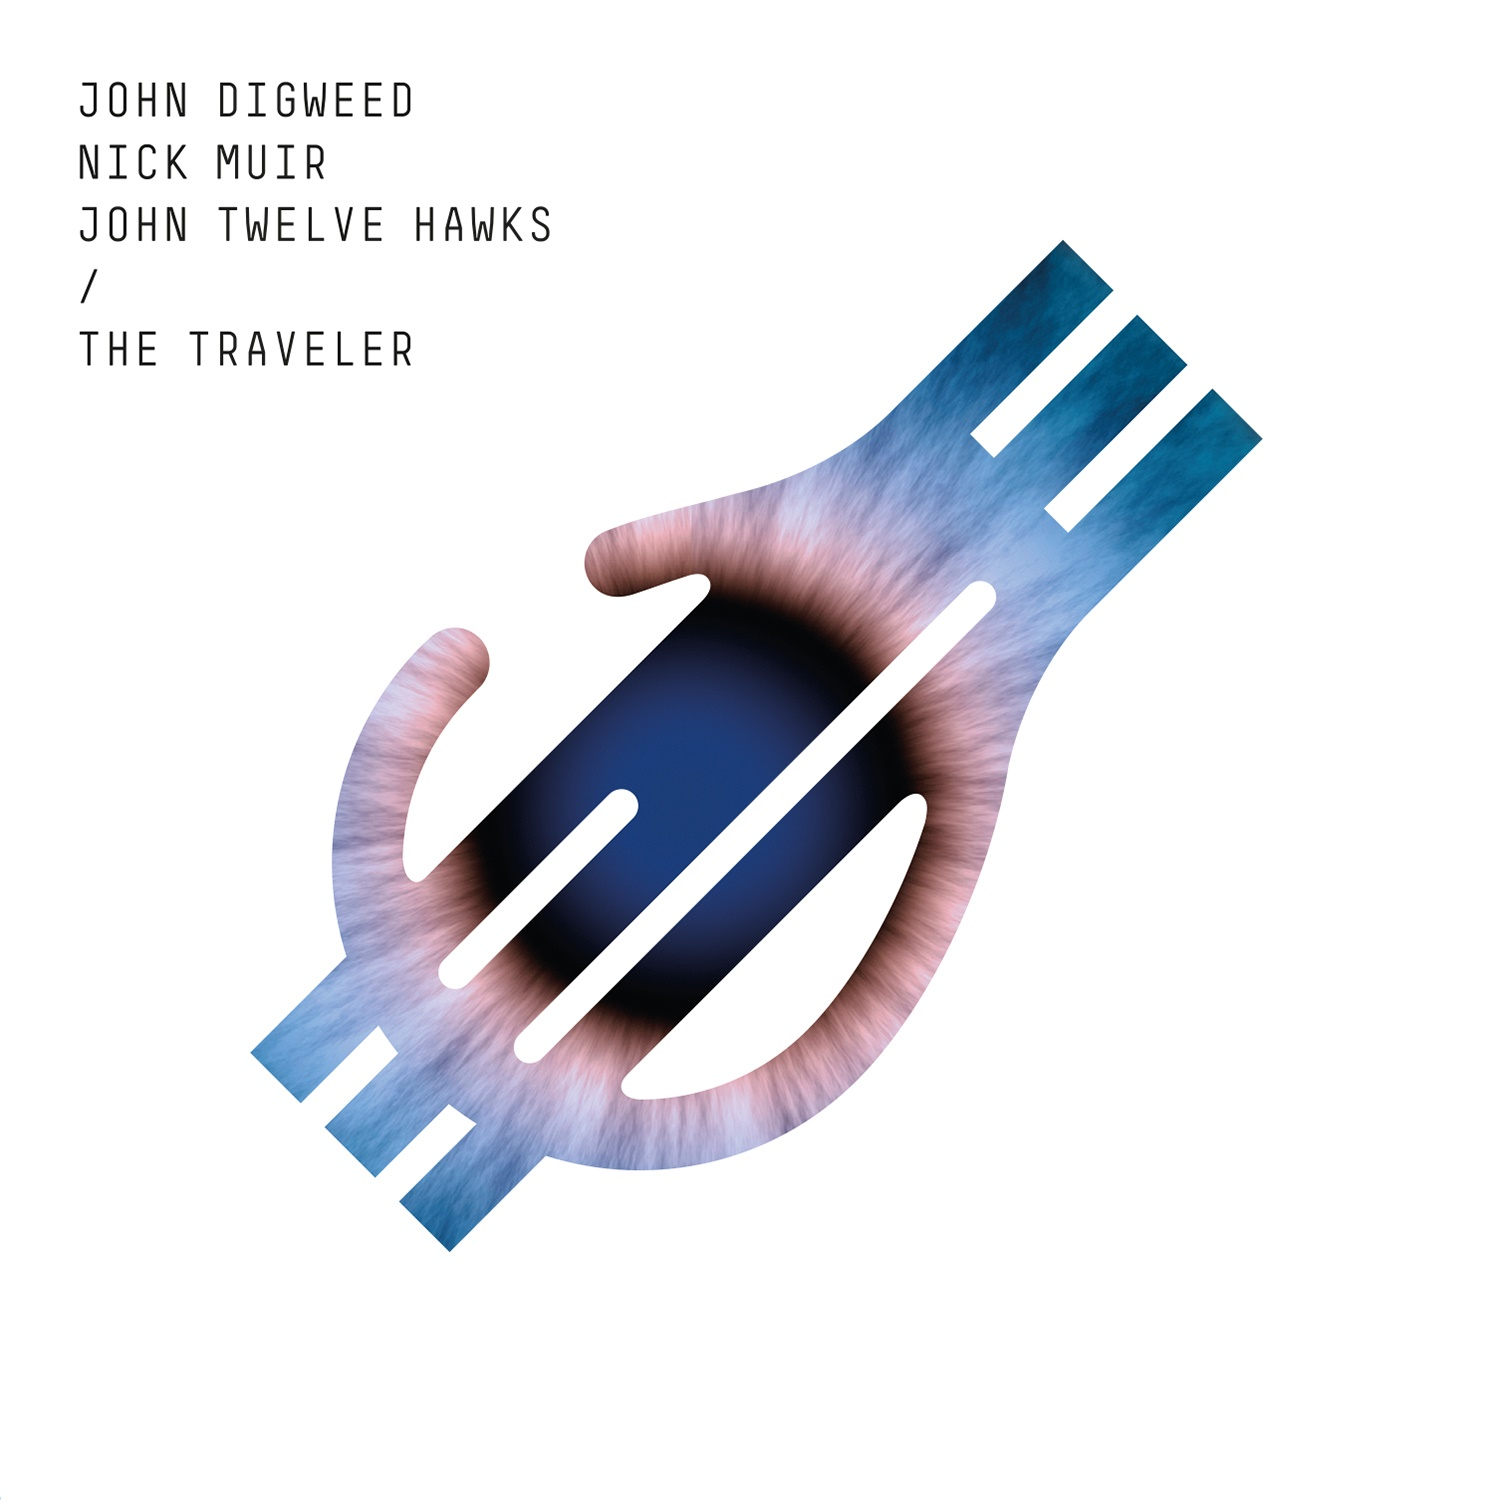 John Digweed Nick Muir John Twelve Hawks The Traveler